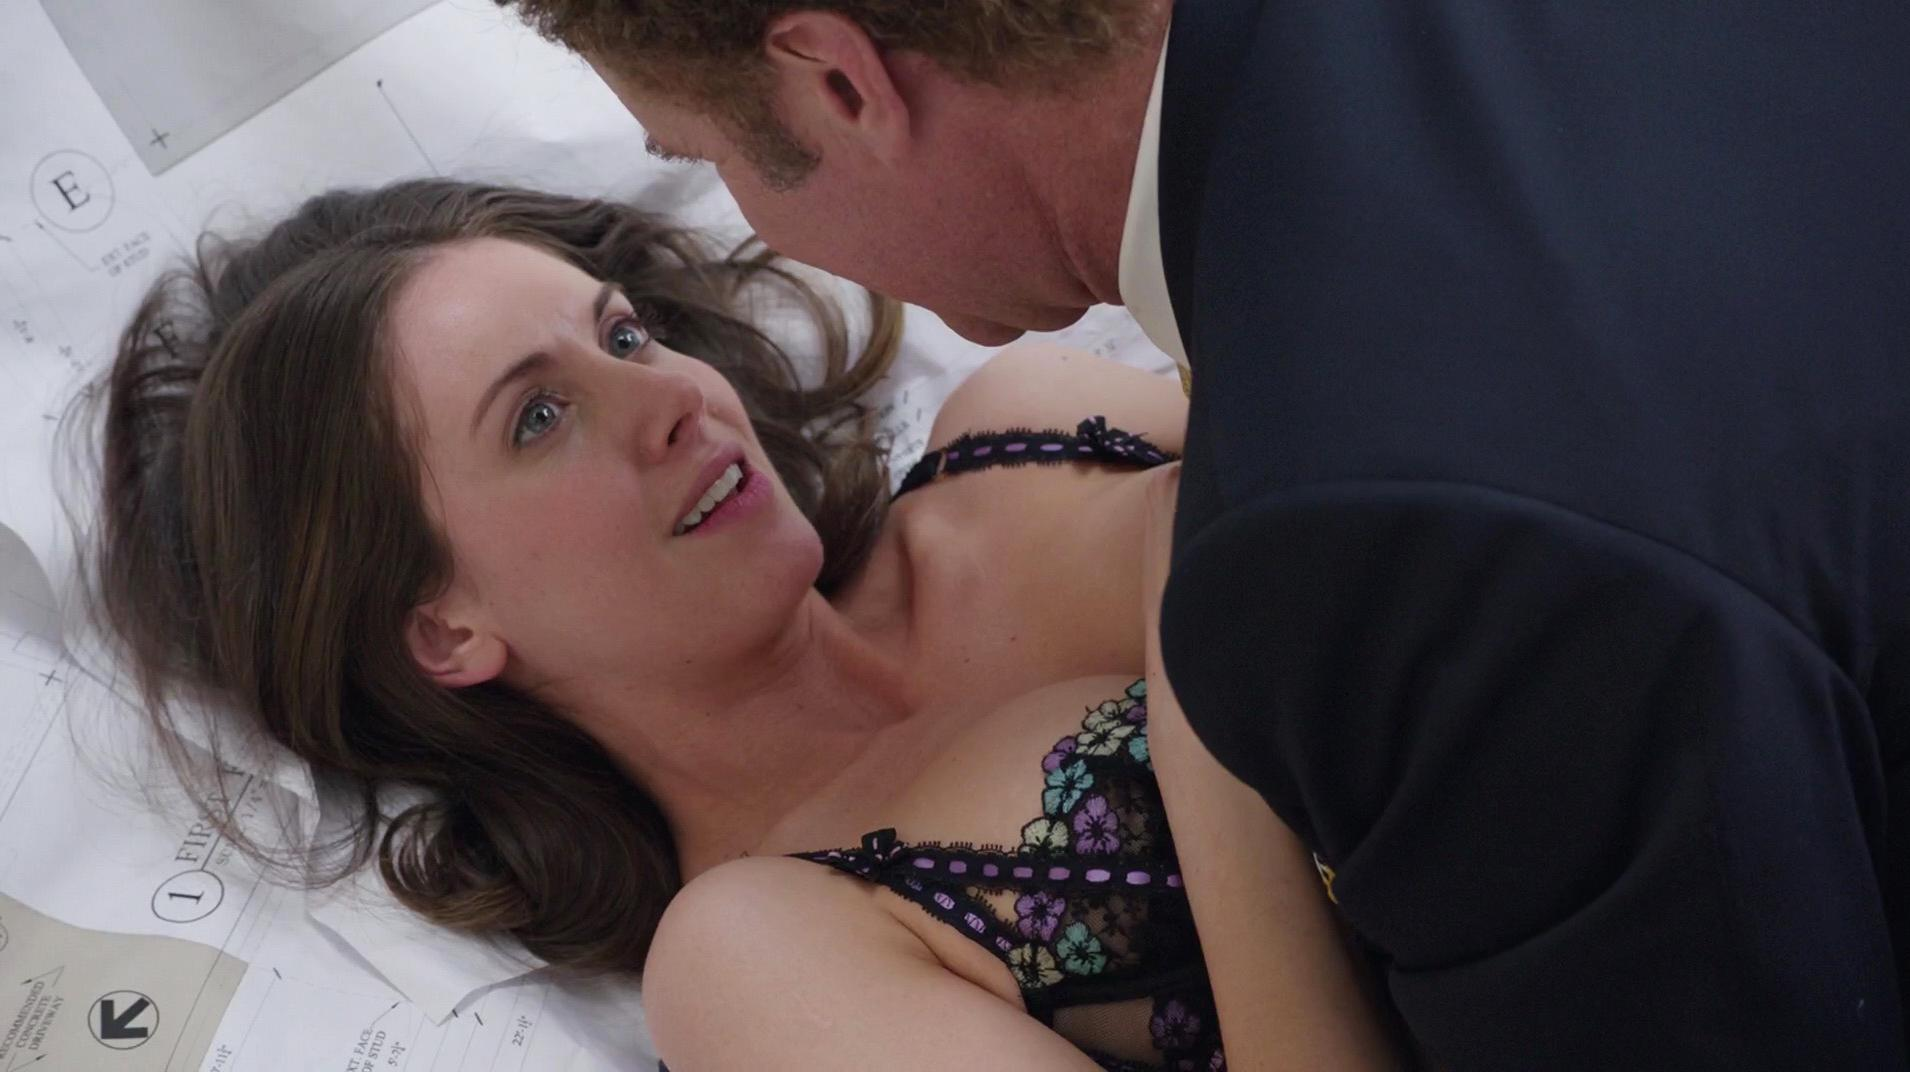 Alison Sex Video nude video celebs » alison brie sexy - get hard (2015)